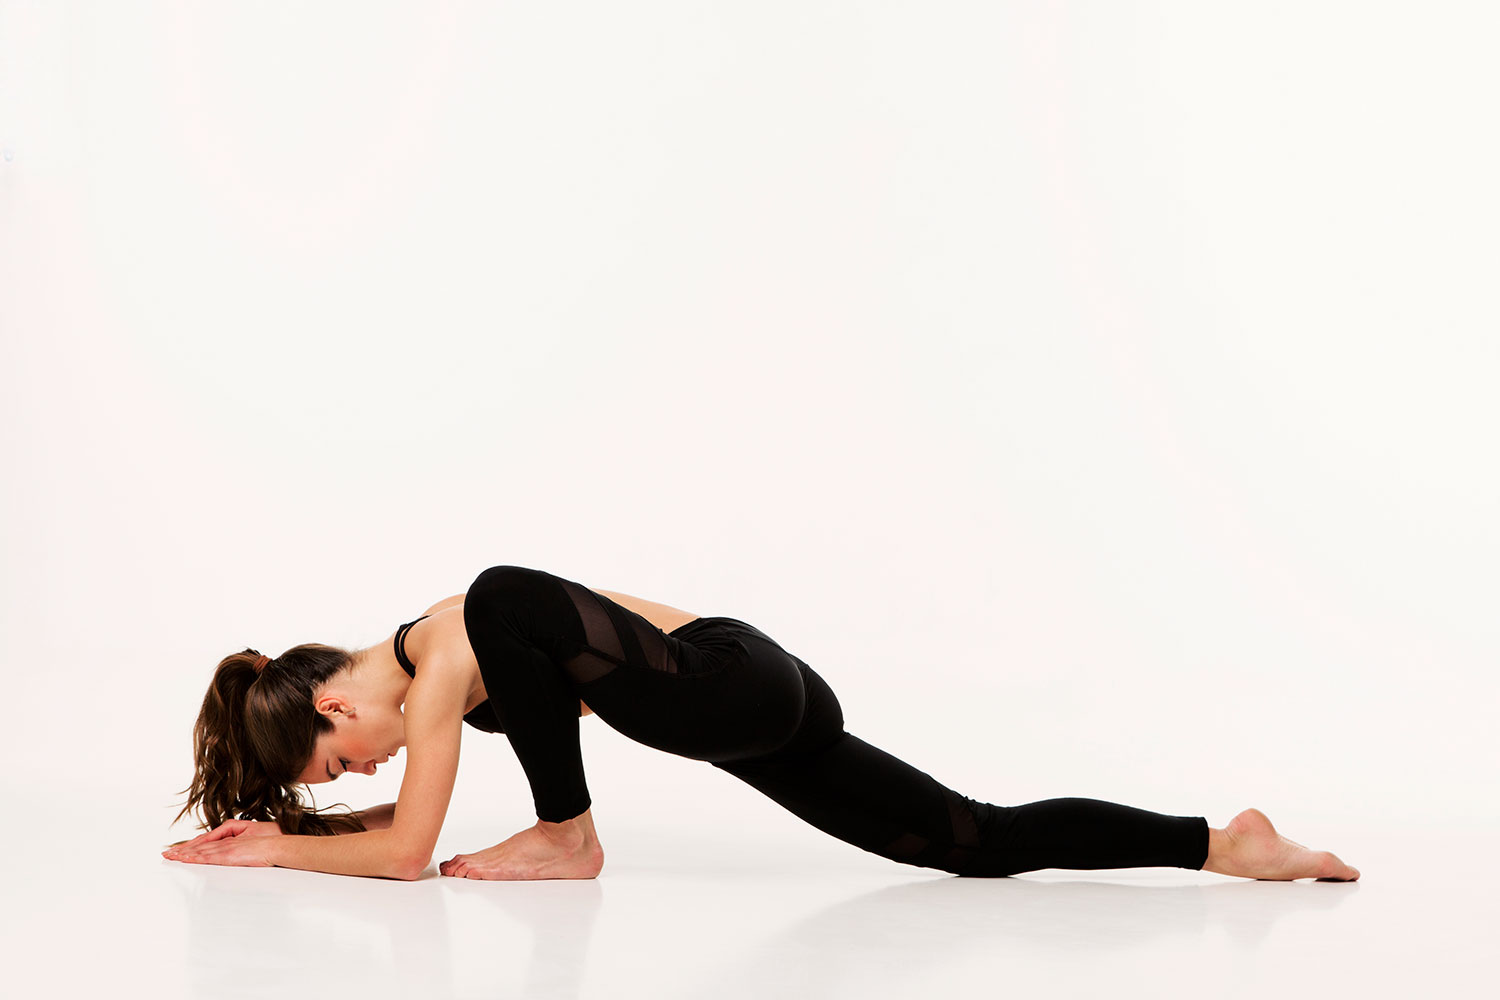 30 Minute Beginner Yoga Workout Routine for Flexibility